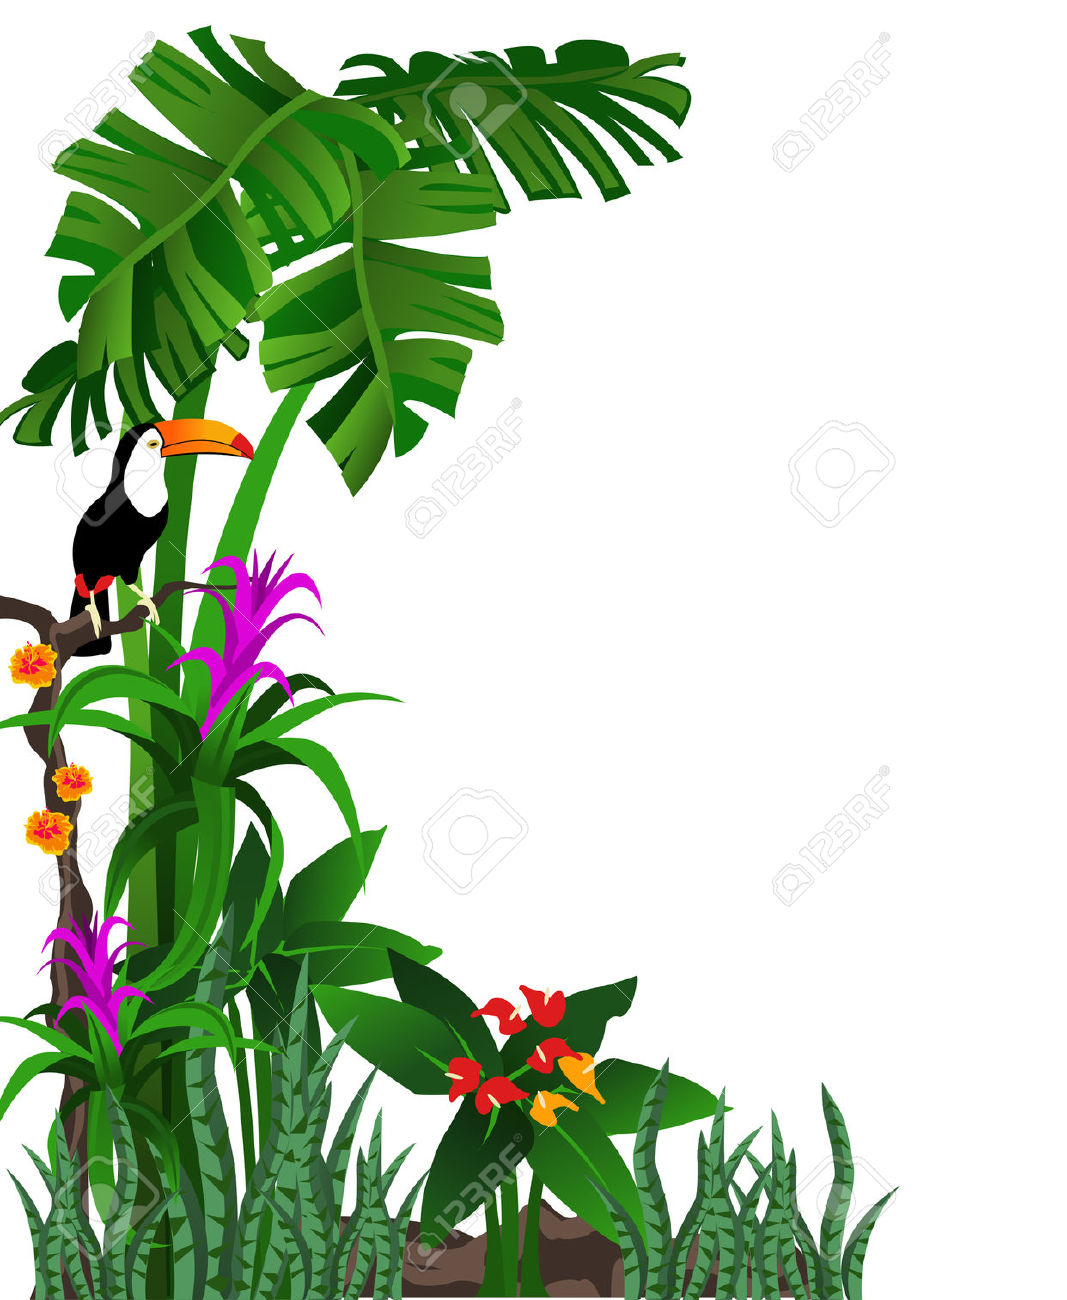 Rainforest clipart #10, Download drawings